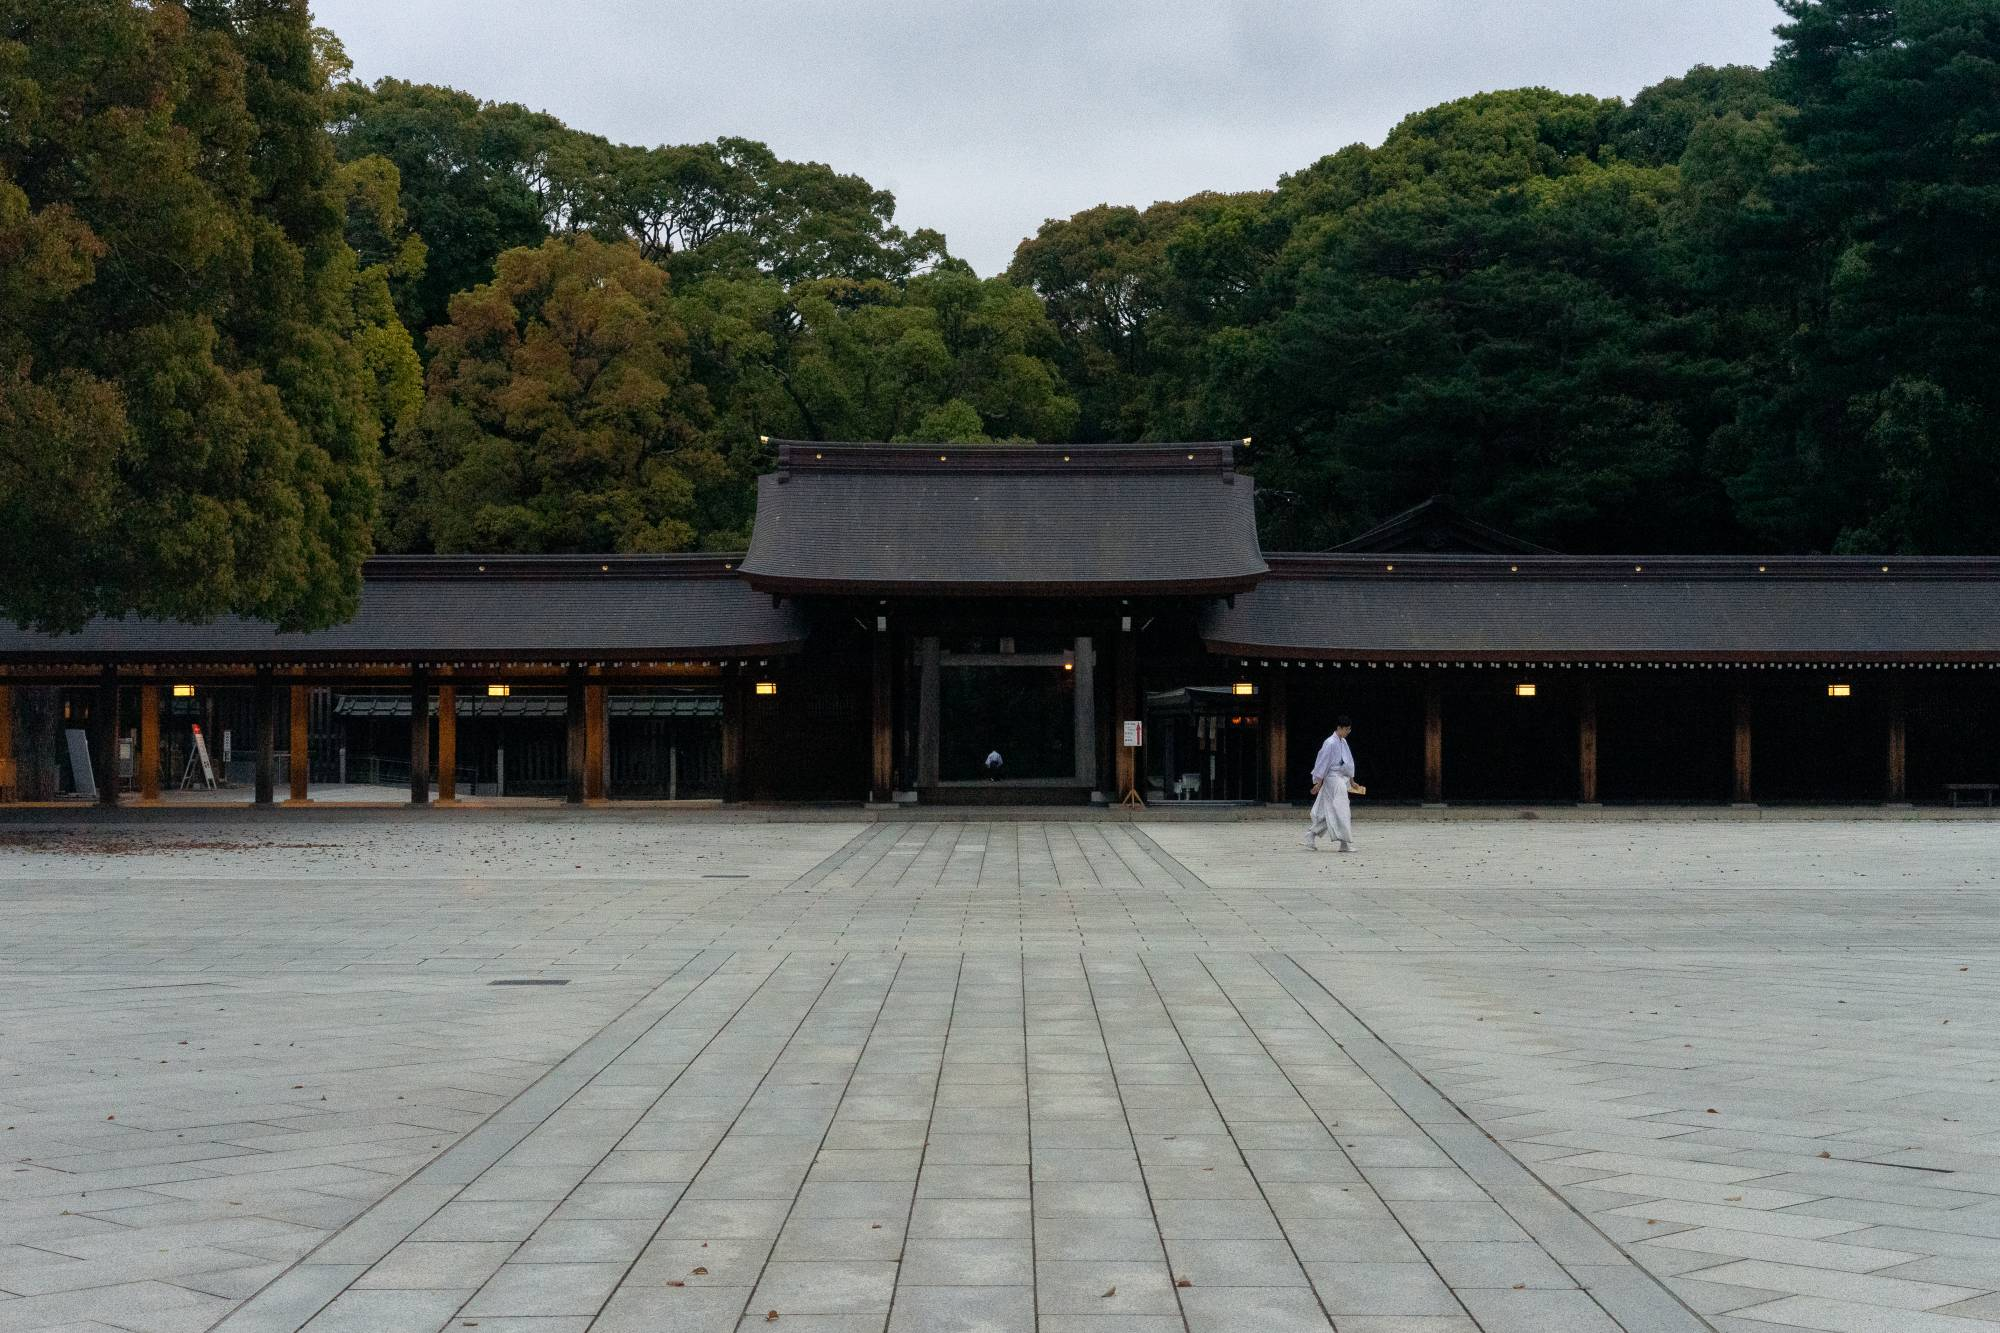 A lone monk walks through the central courtyard of Meiji Jingu, one of Tokyo's largest shrines, dedicated to the spirits of the Meiji Emperor and Empress. Located not far from Harajuku, the shrine usually receives 3 million visitors a year. Throughout the state of emergency, it was largely deserted. | OSCAR BOYD